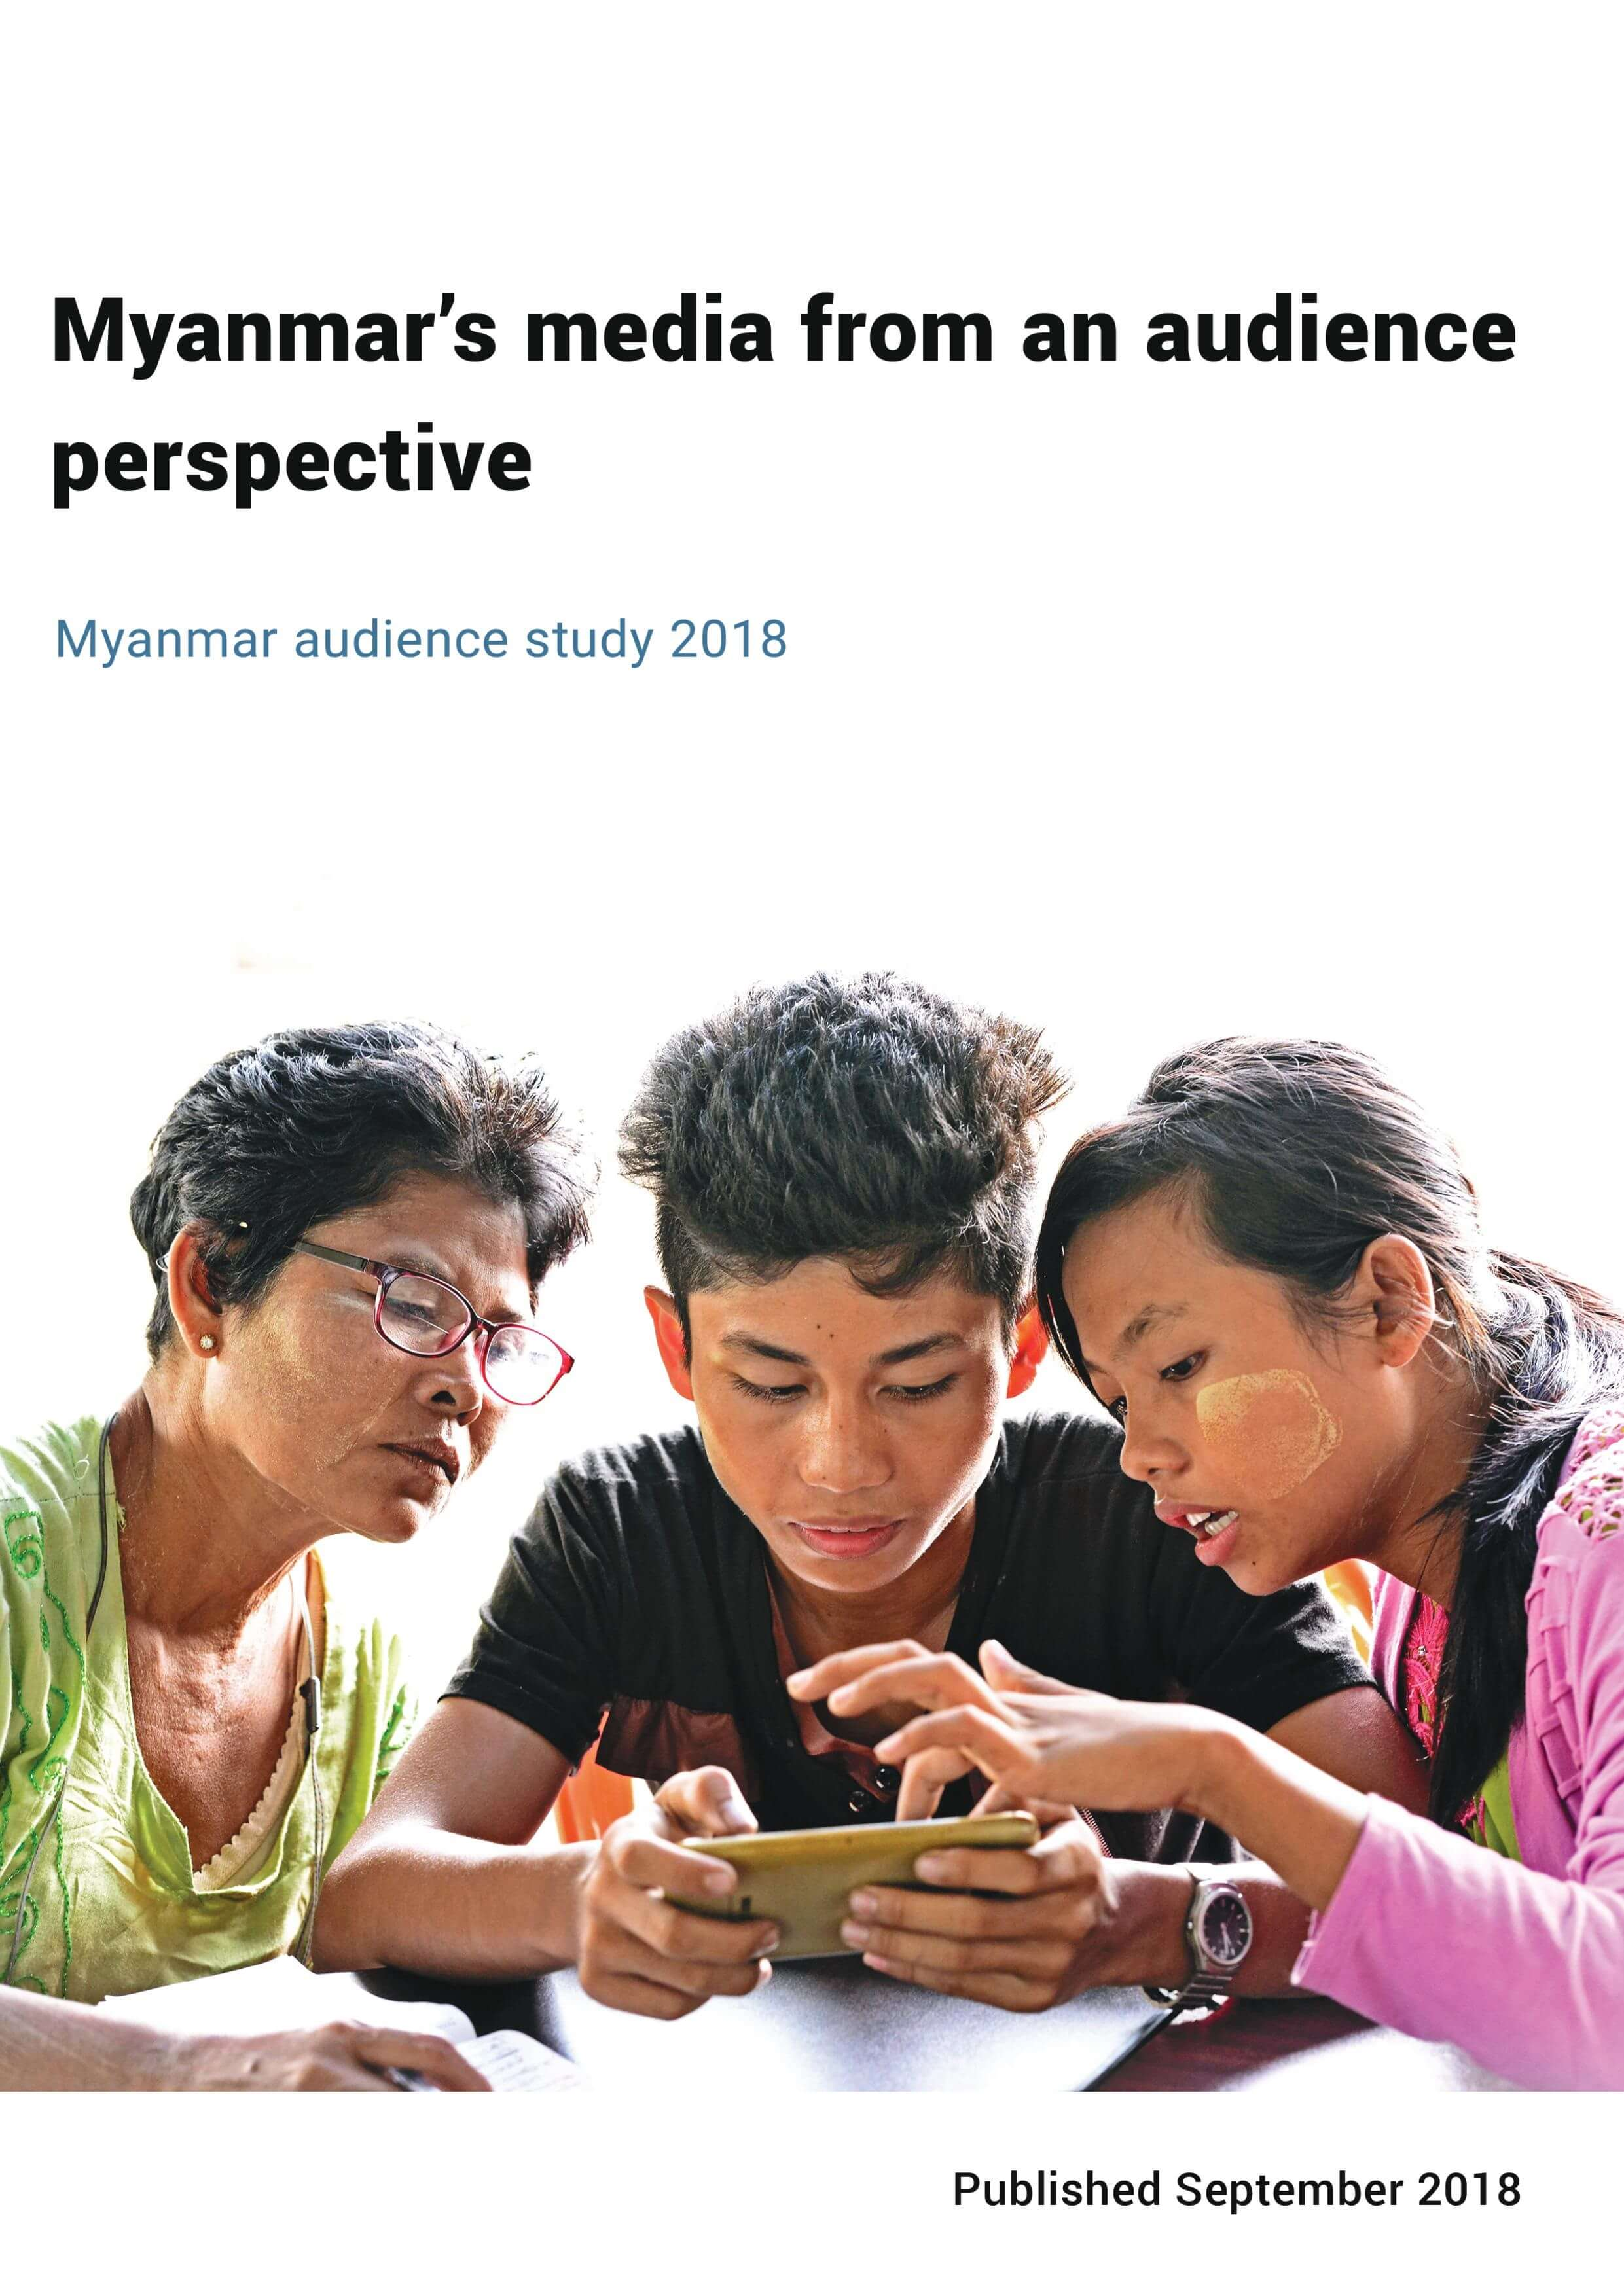 Myanmar's media from an audience perspective